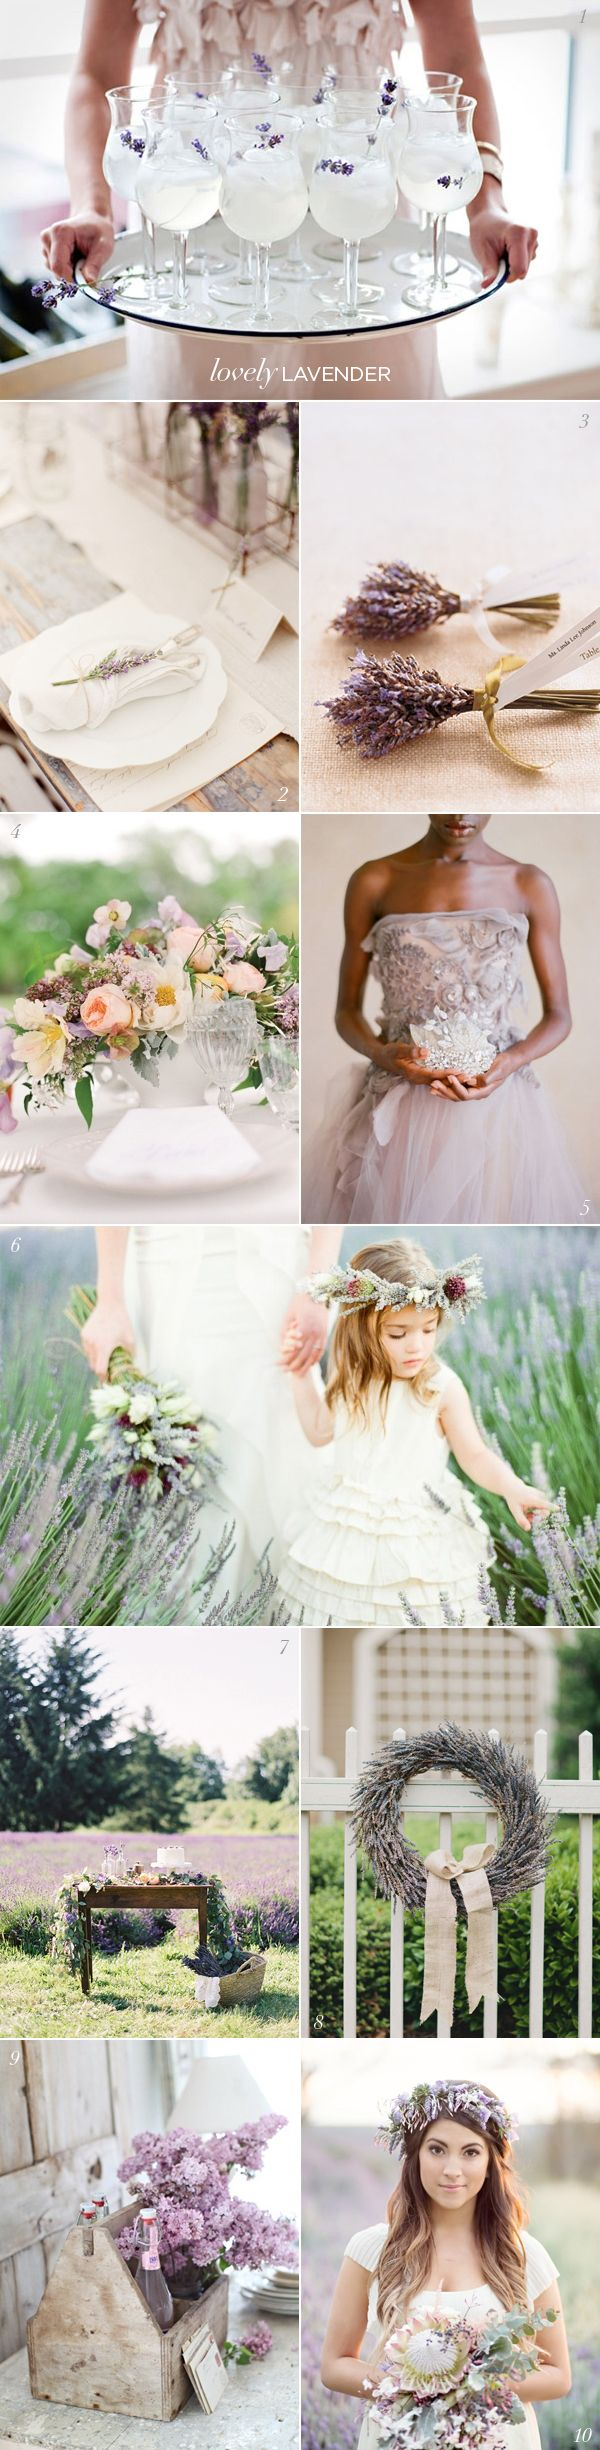 Lavender Wedding Ideas | Lavender weddings, Lavender and Water